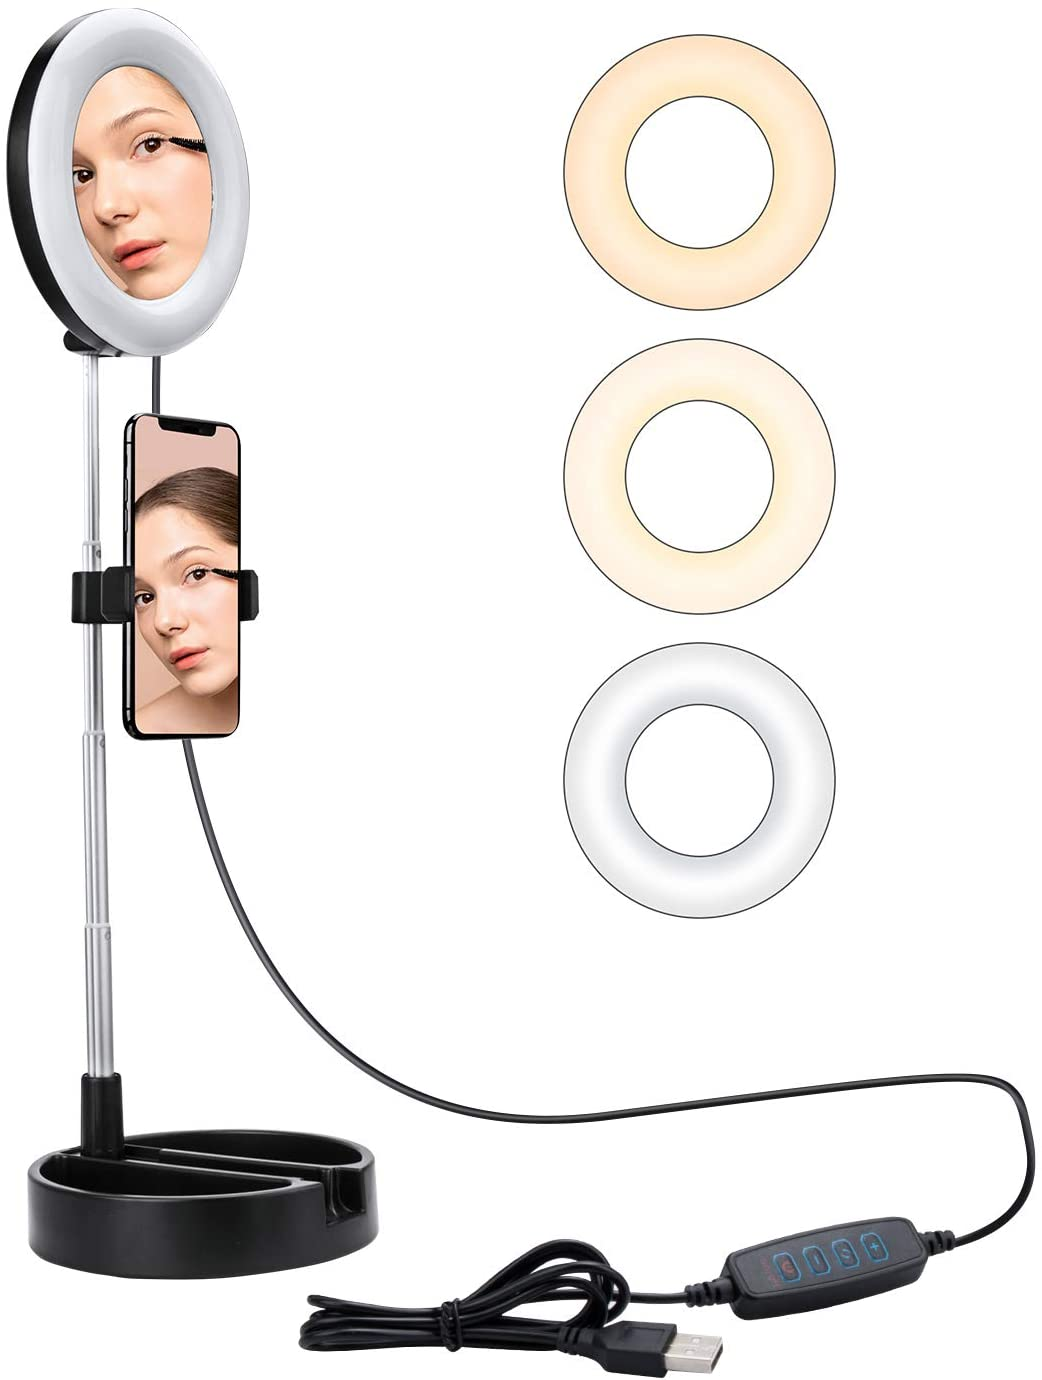 """6"""" Selfie Ring Light Stand,Livelit Desk Foldable Ring Light Built-in Mirror for Makeup YouTube Video Live Streaming Photography Compatible with iPhone&Android (Black)"""